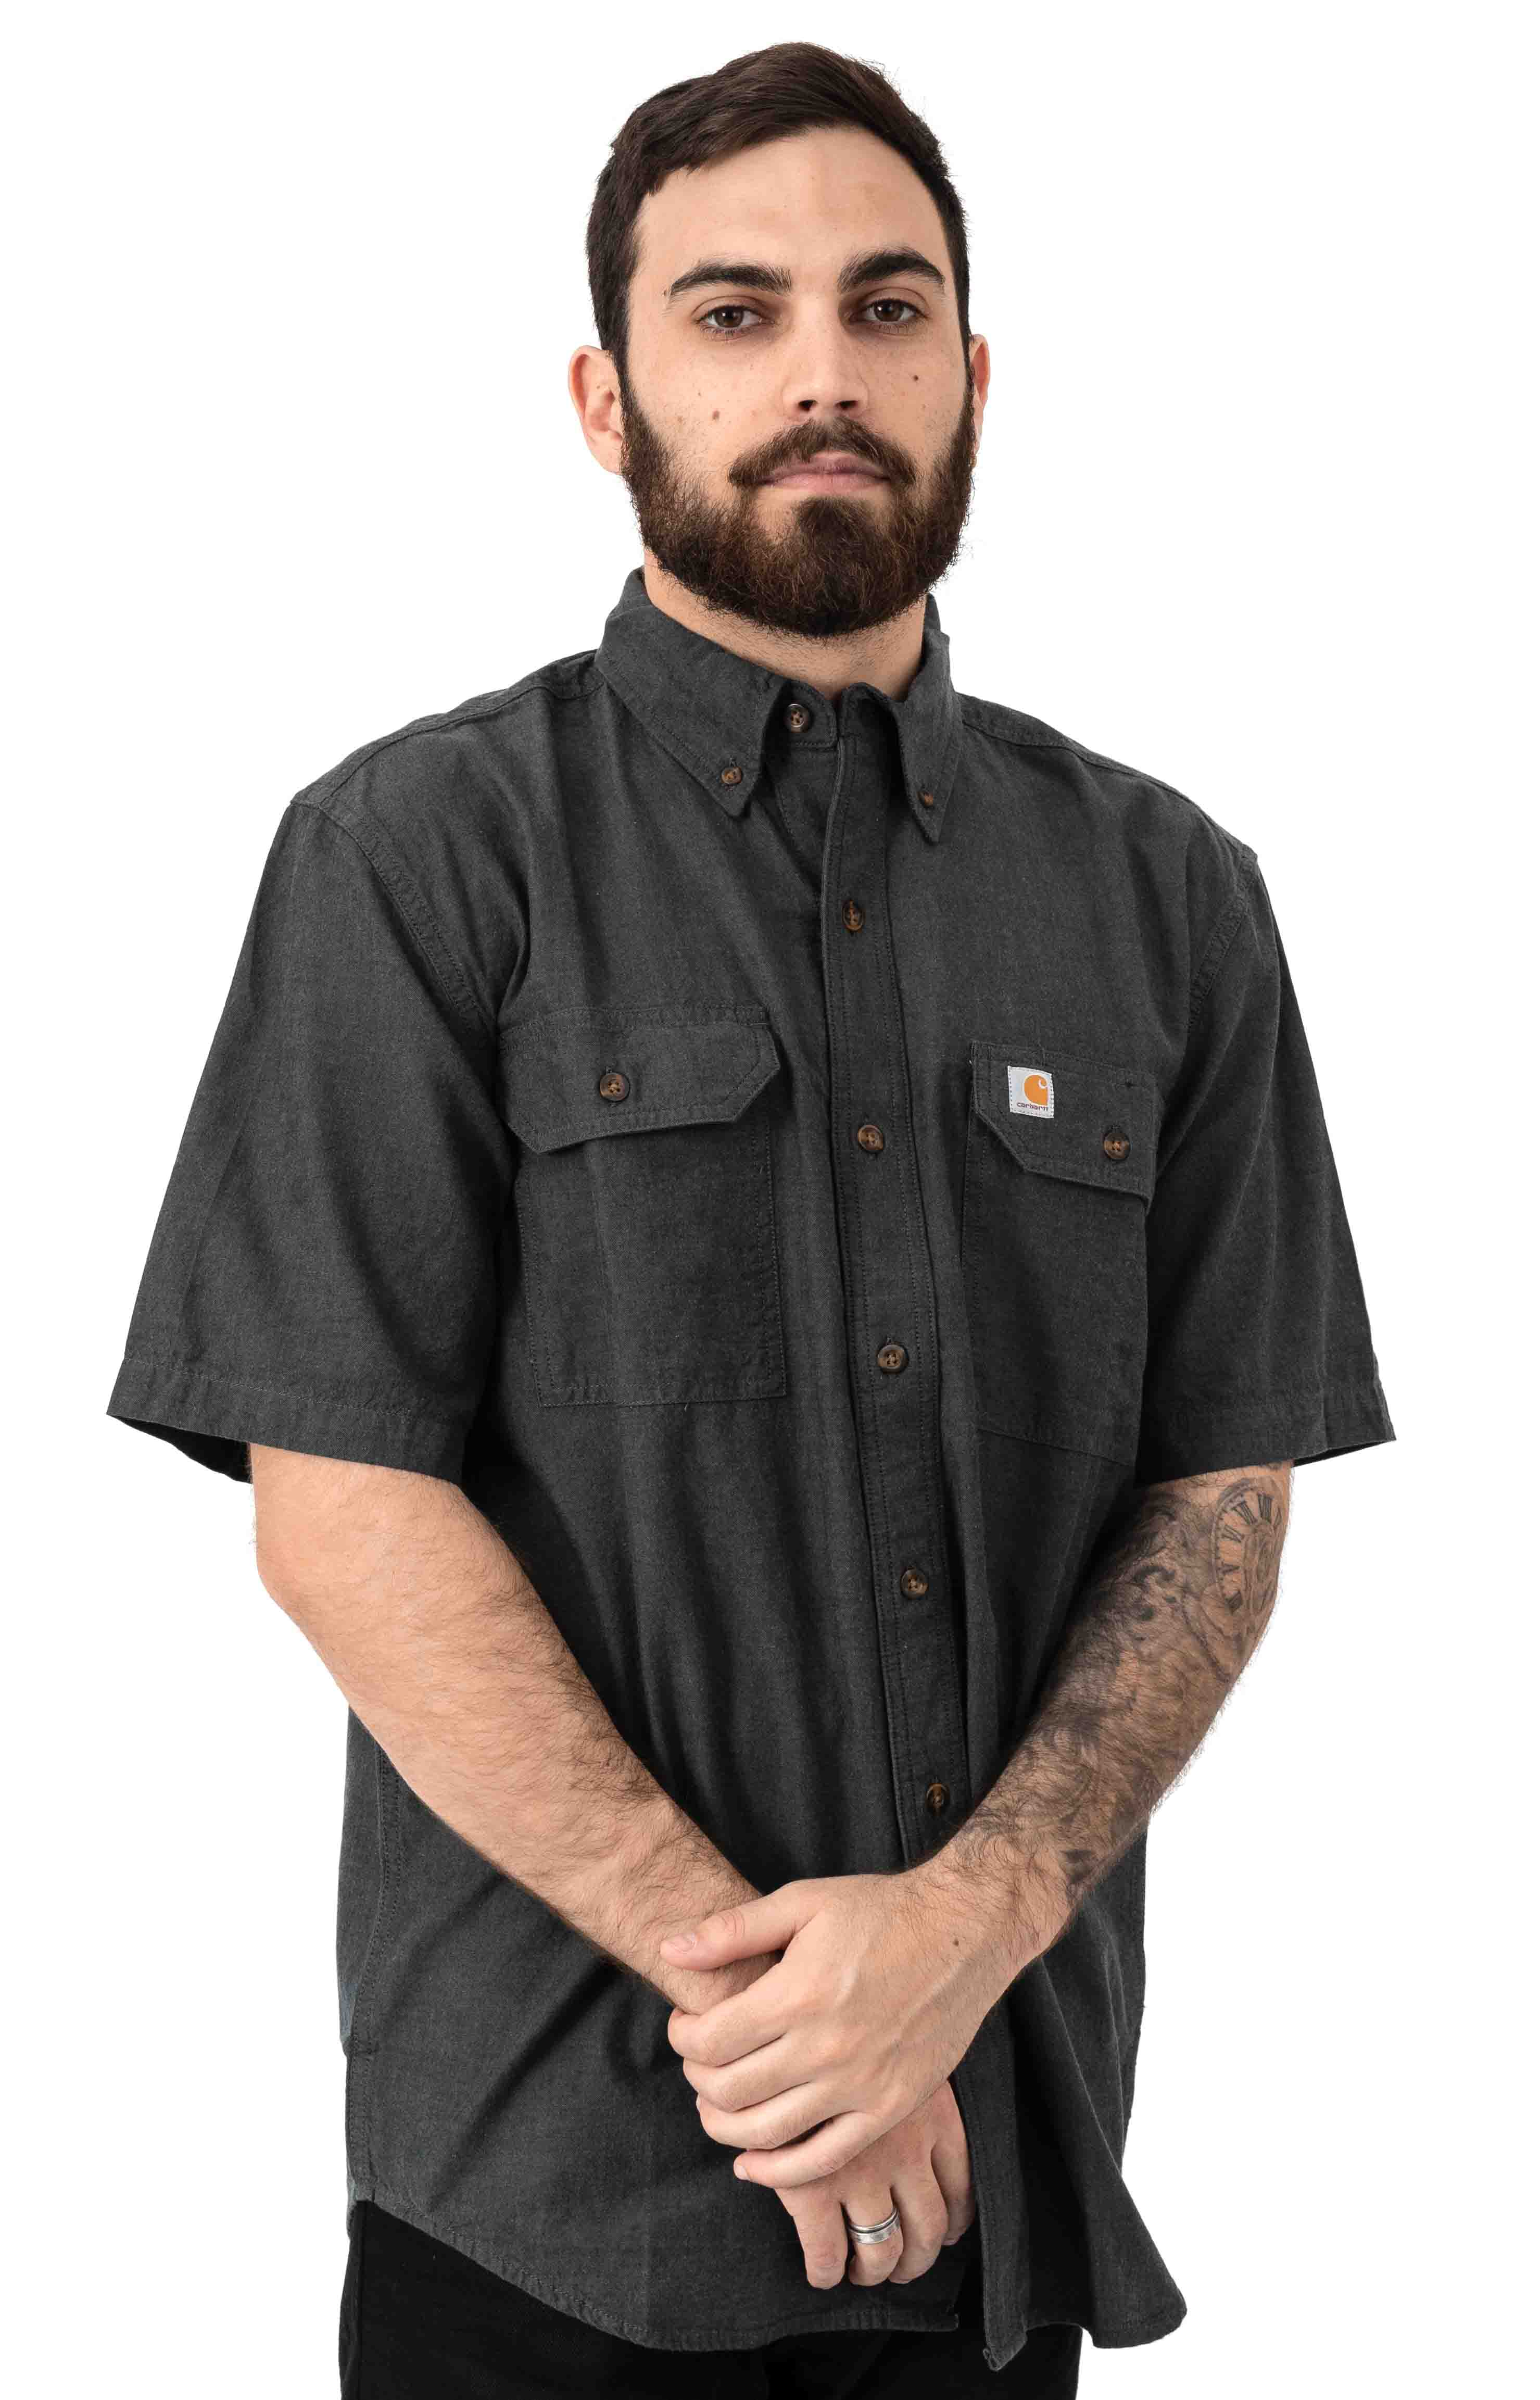 (104369) Original Fit MW S/S Button-Up Shirt - Black Chambray